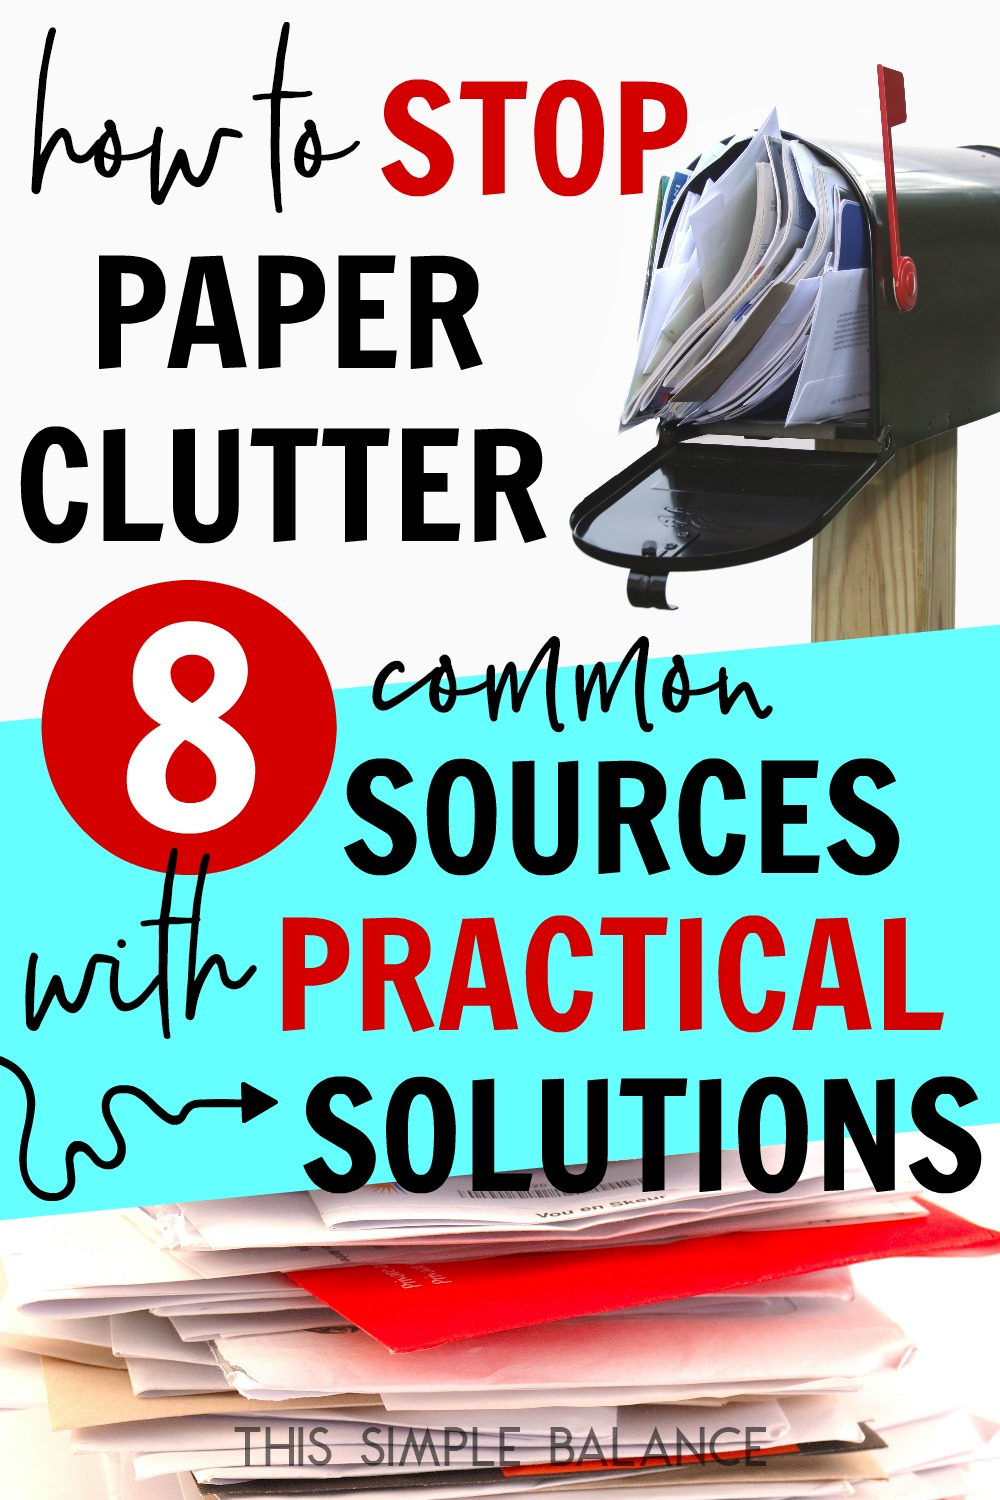 Is paper clutter driving you crazy? Here are 8 common sources of paper clutter with practical solutions to drastically reduce the influx, which is key to maintaining a decluttered home!